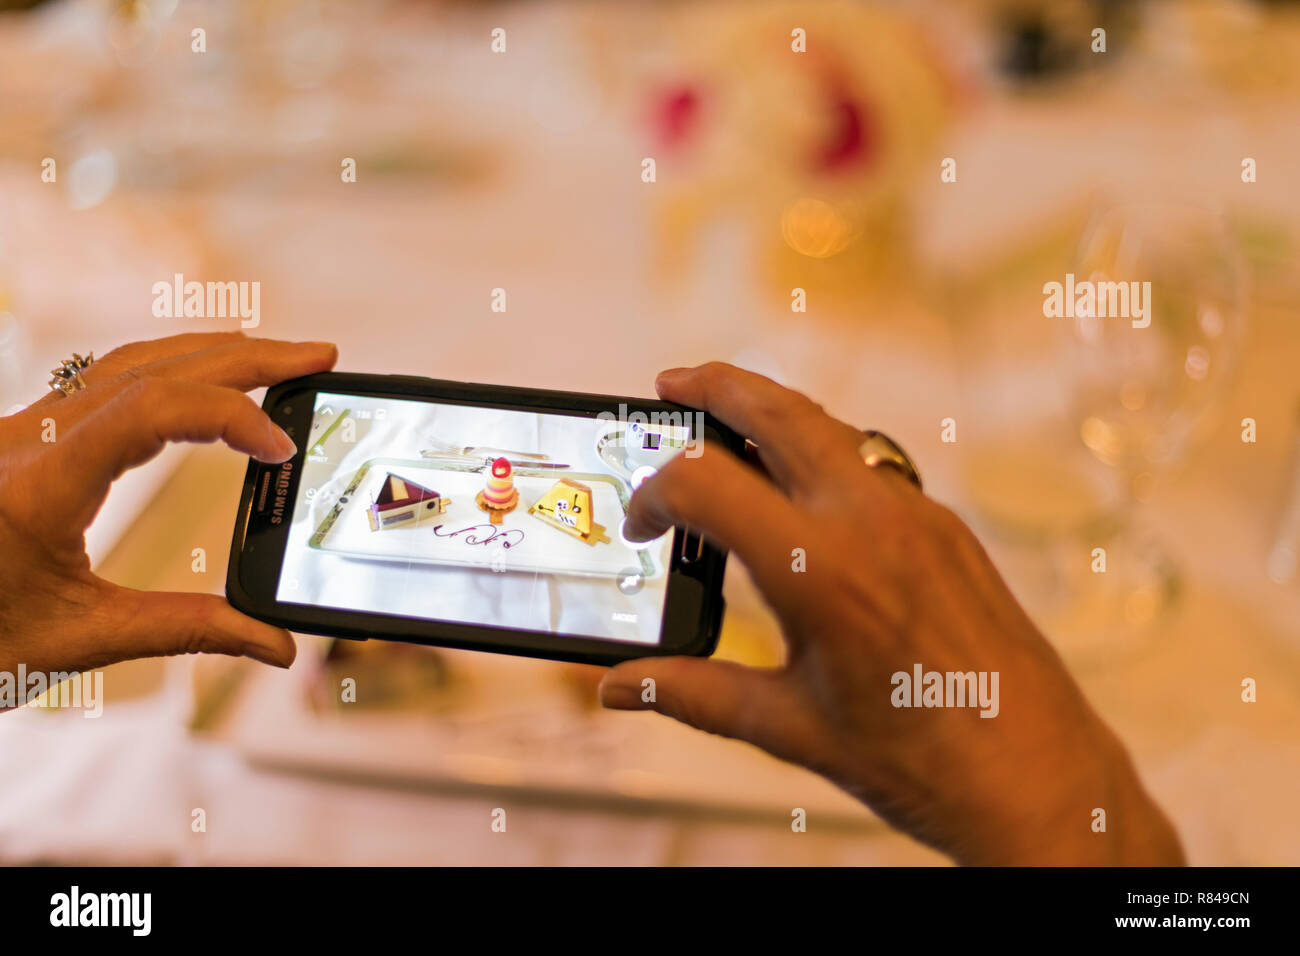 food photography, cell phone image of desserts - Stock Image